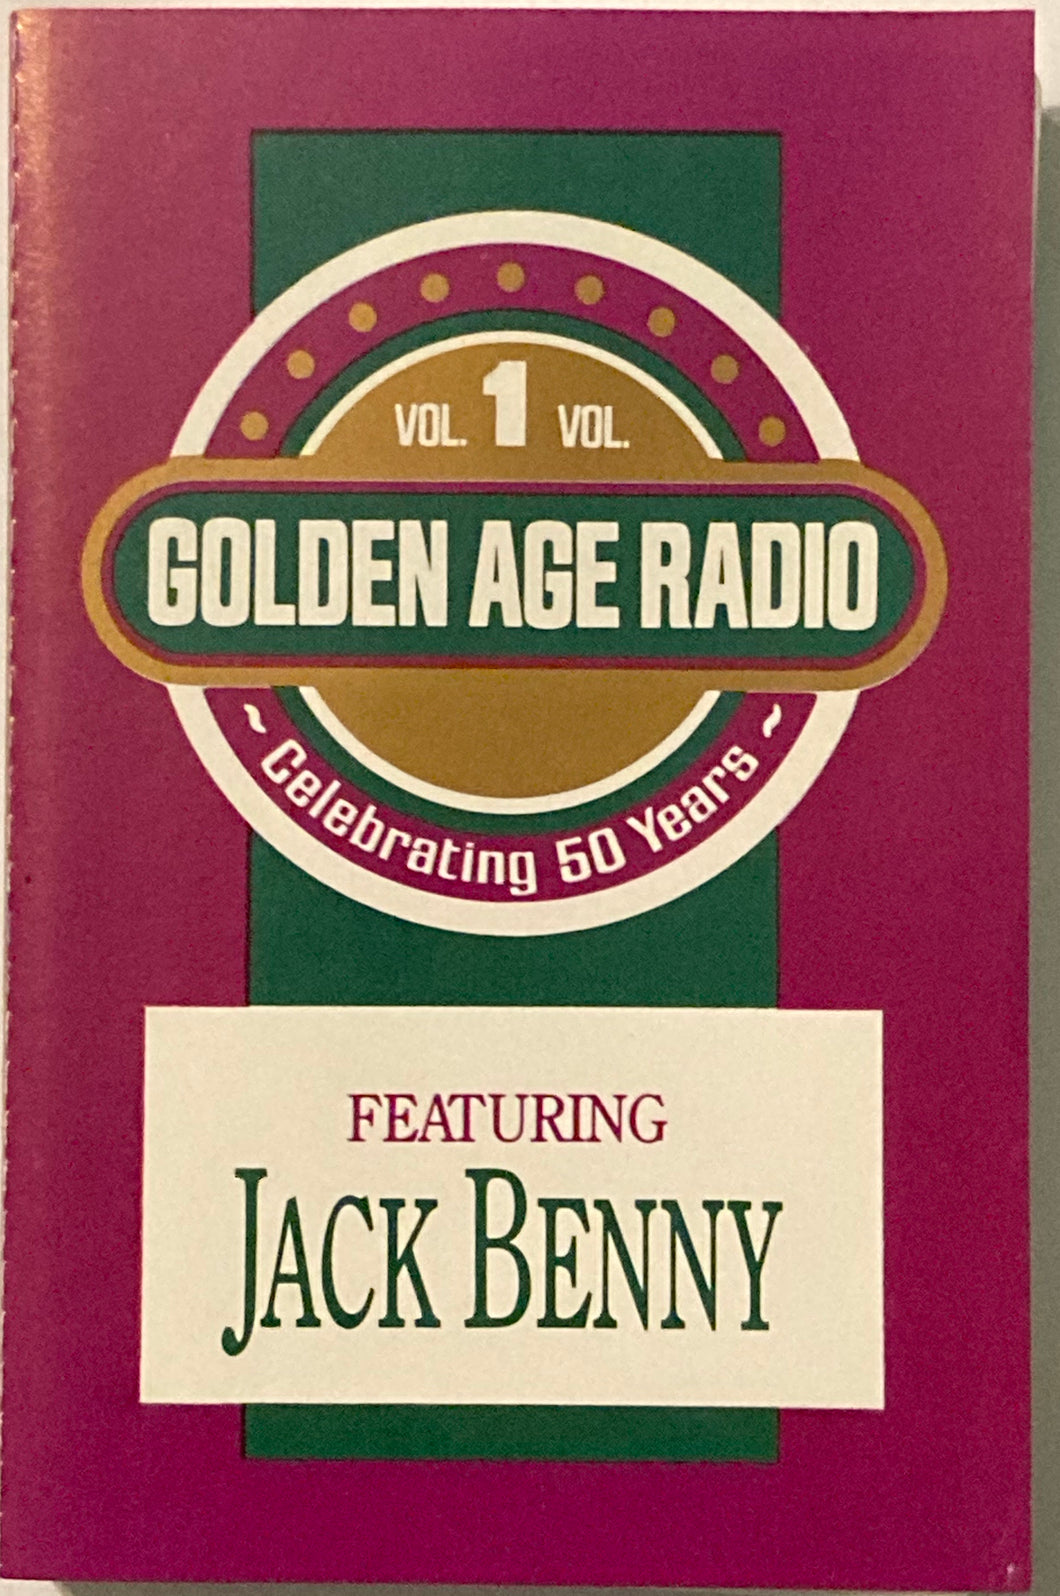 Golden Age Radio Vol. 1 Featuring Jack Benny Cassette G+